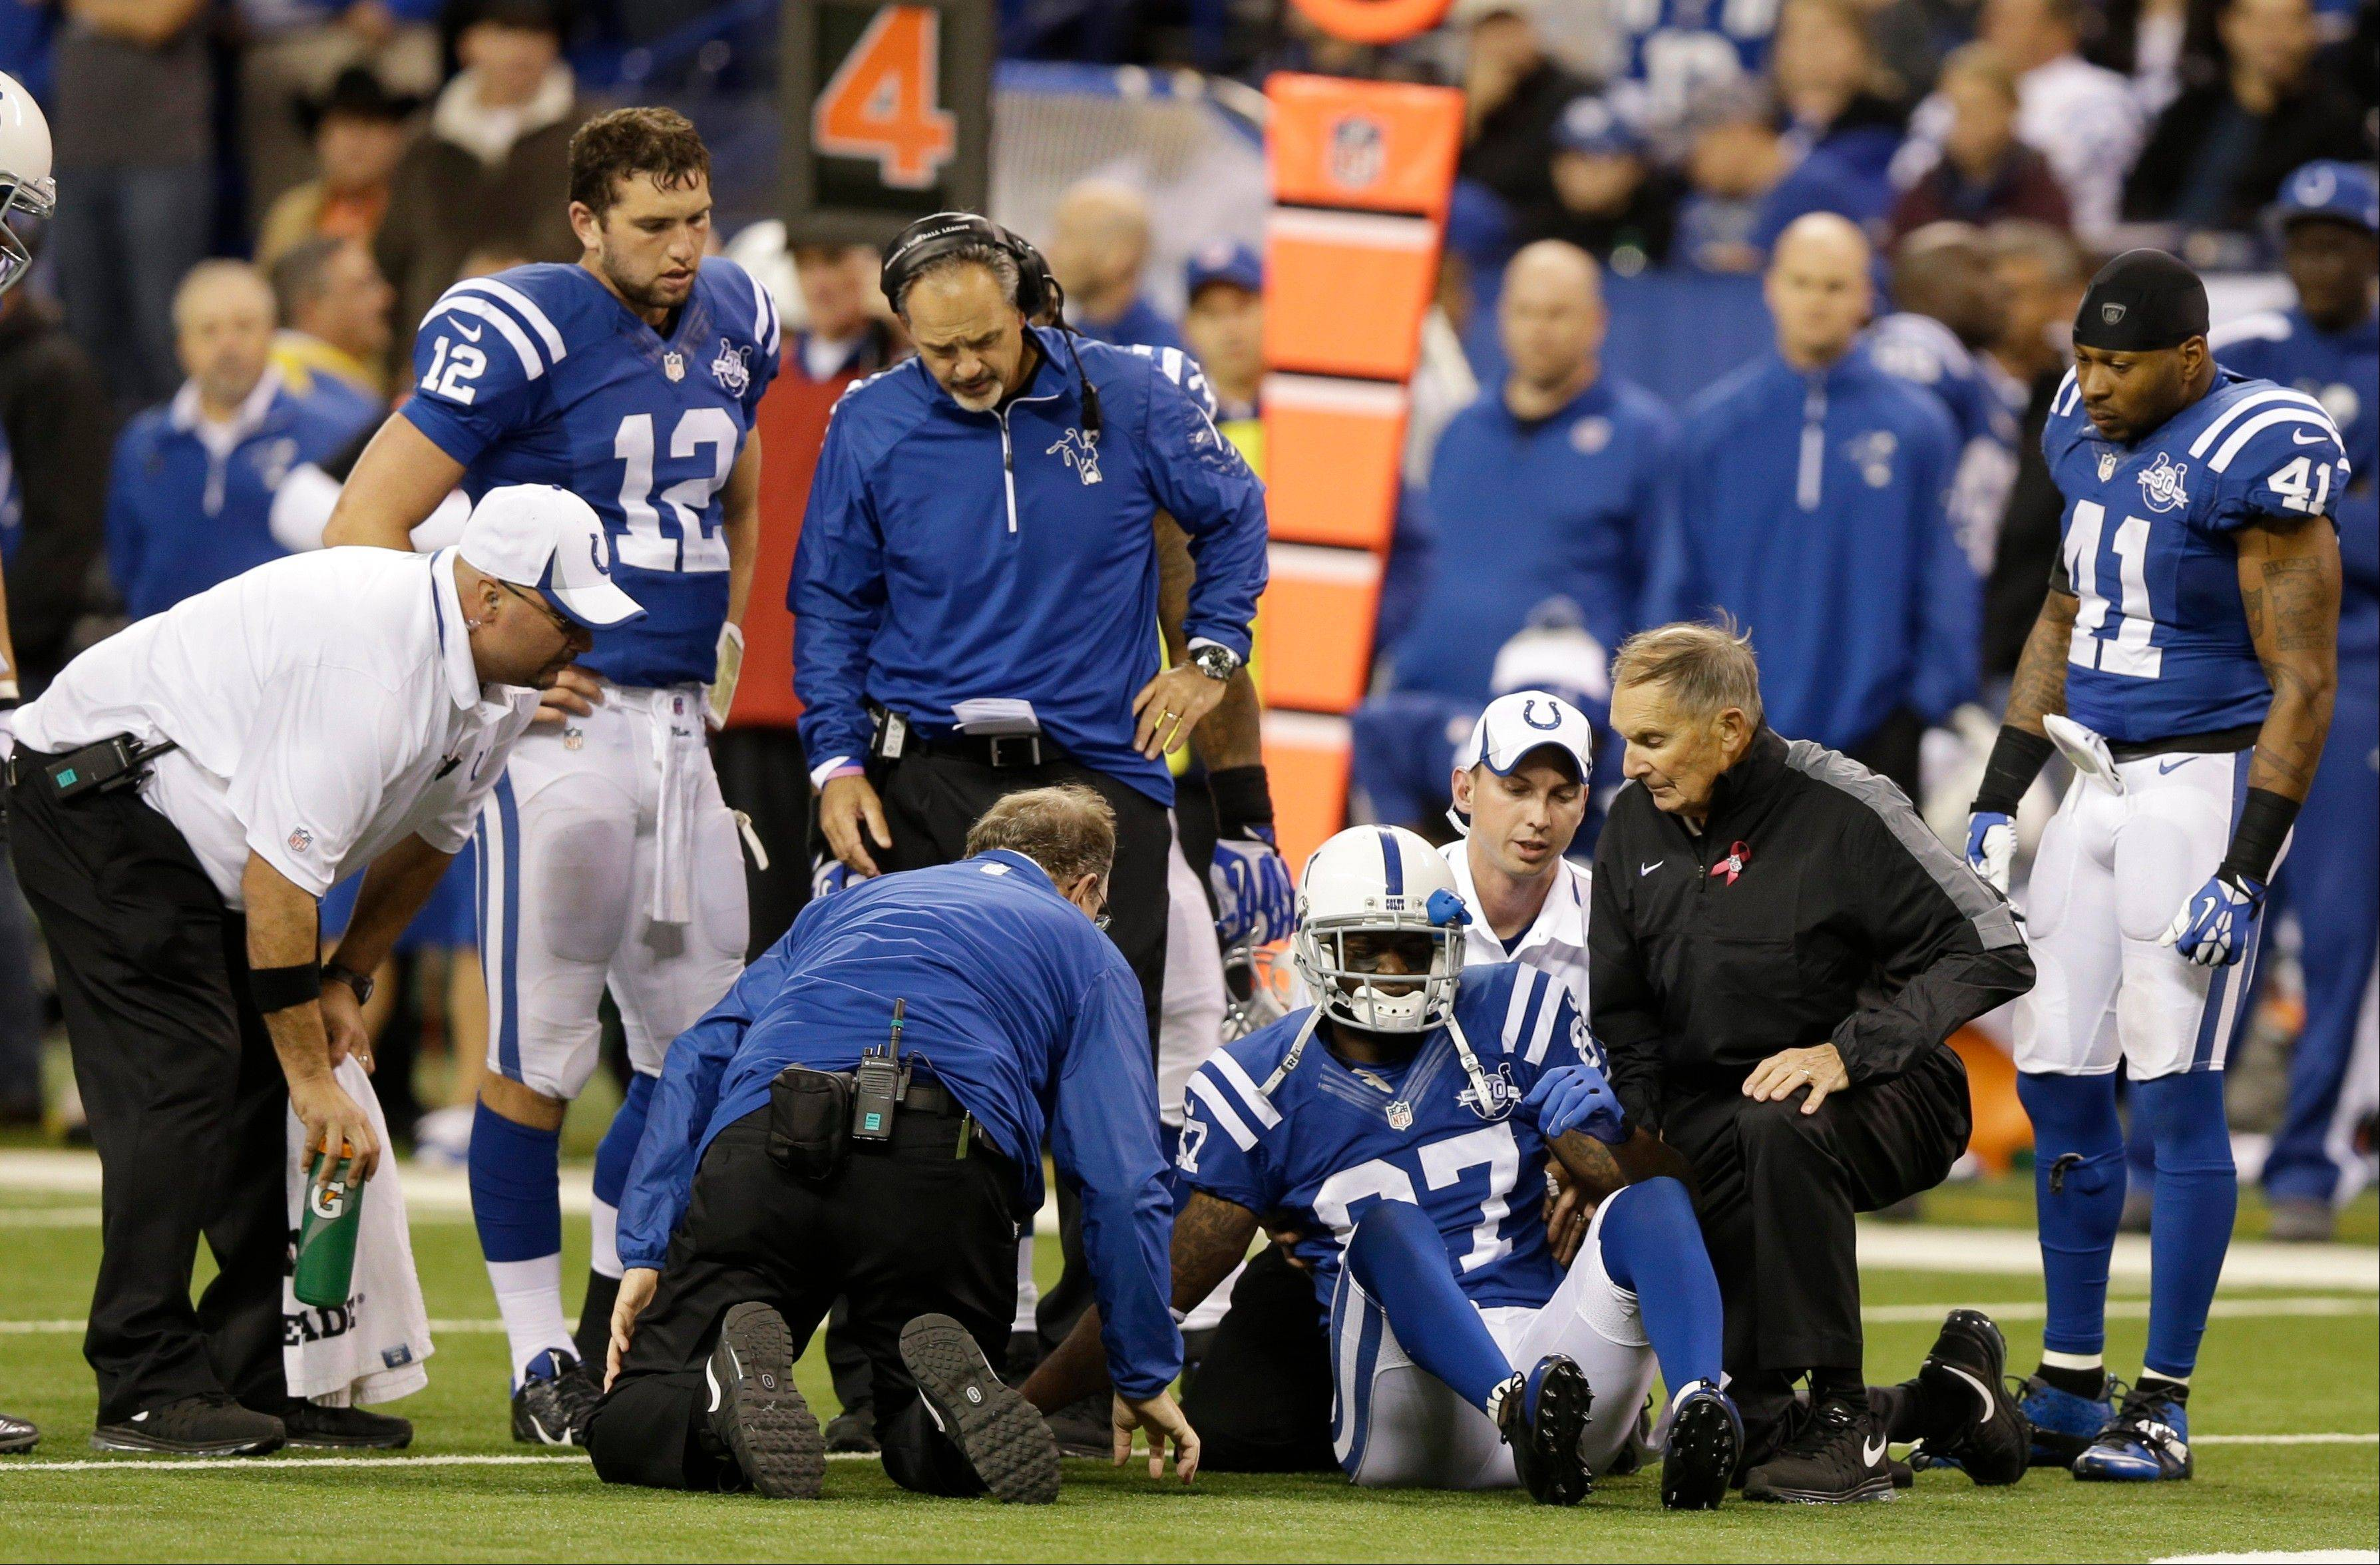 Indianapolis Colts wide receiver Reggie Wayne talks to trainers as they tend to his injured knee during the second half of Sunday's home game against Denver.